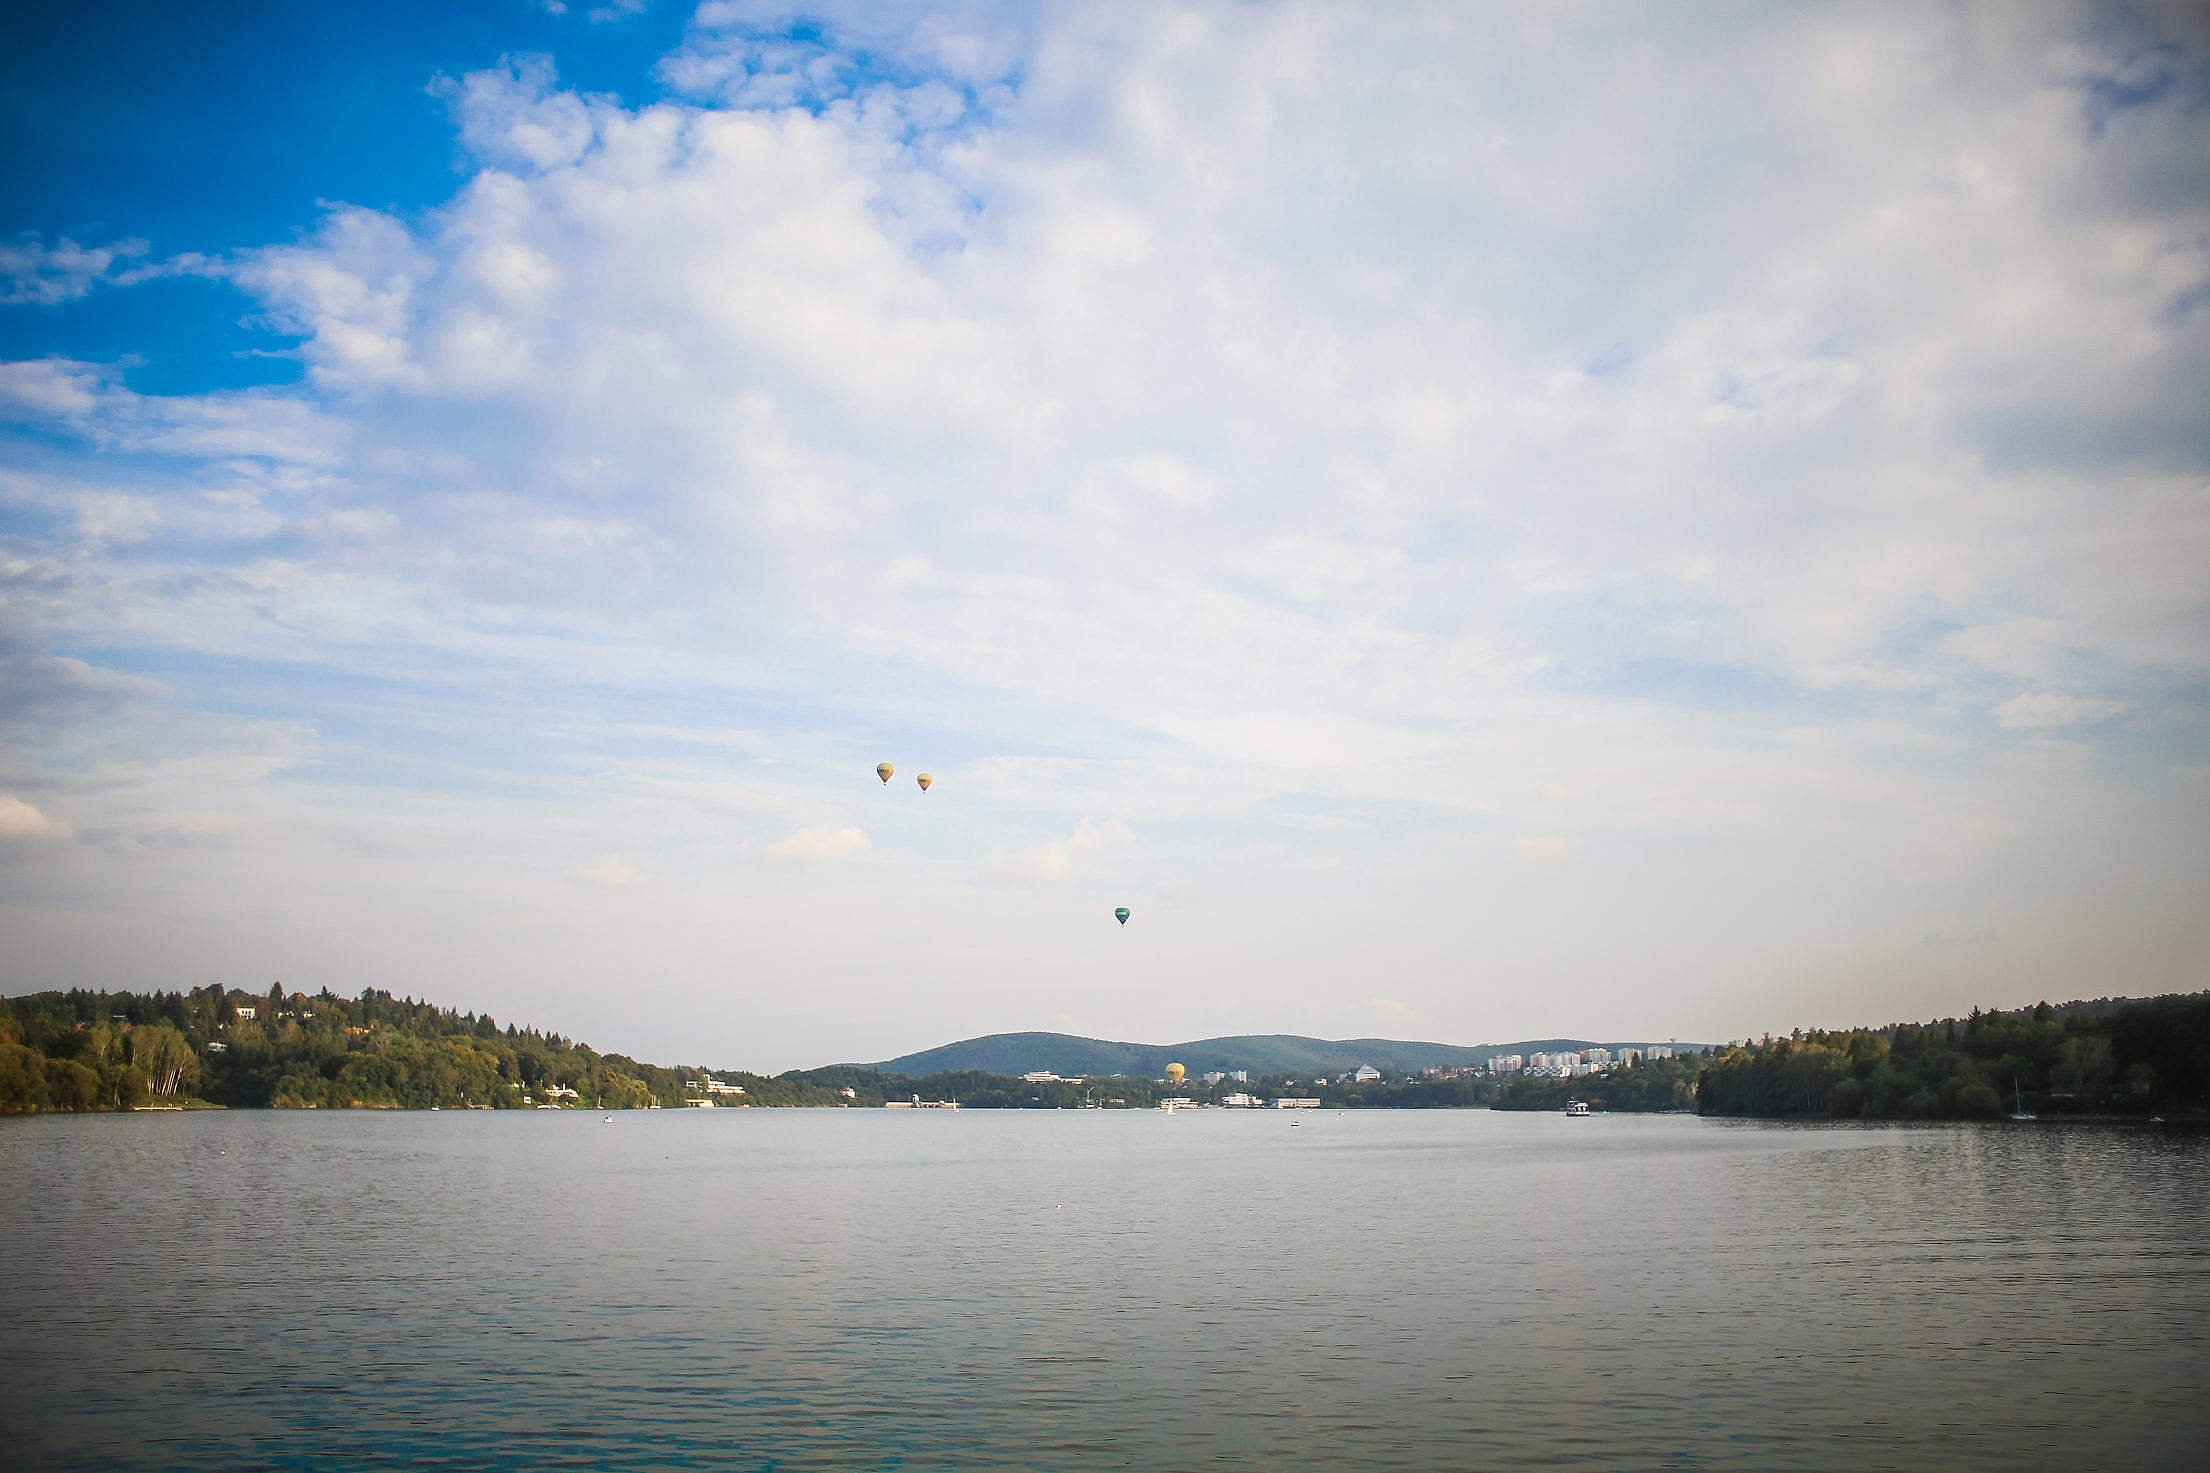 Four Hot Air Balloons over Lake Free Stock Photo